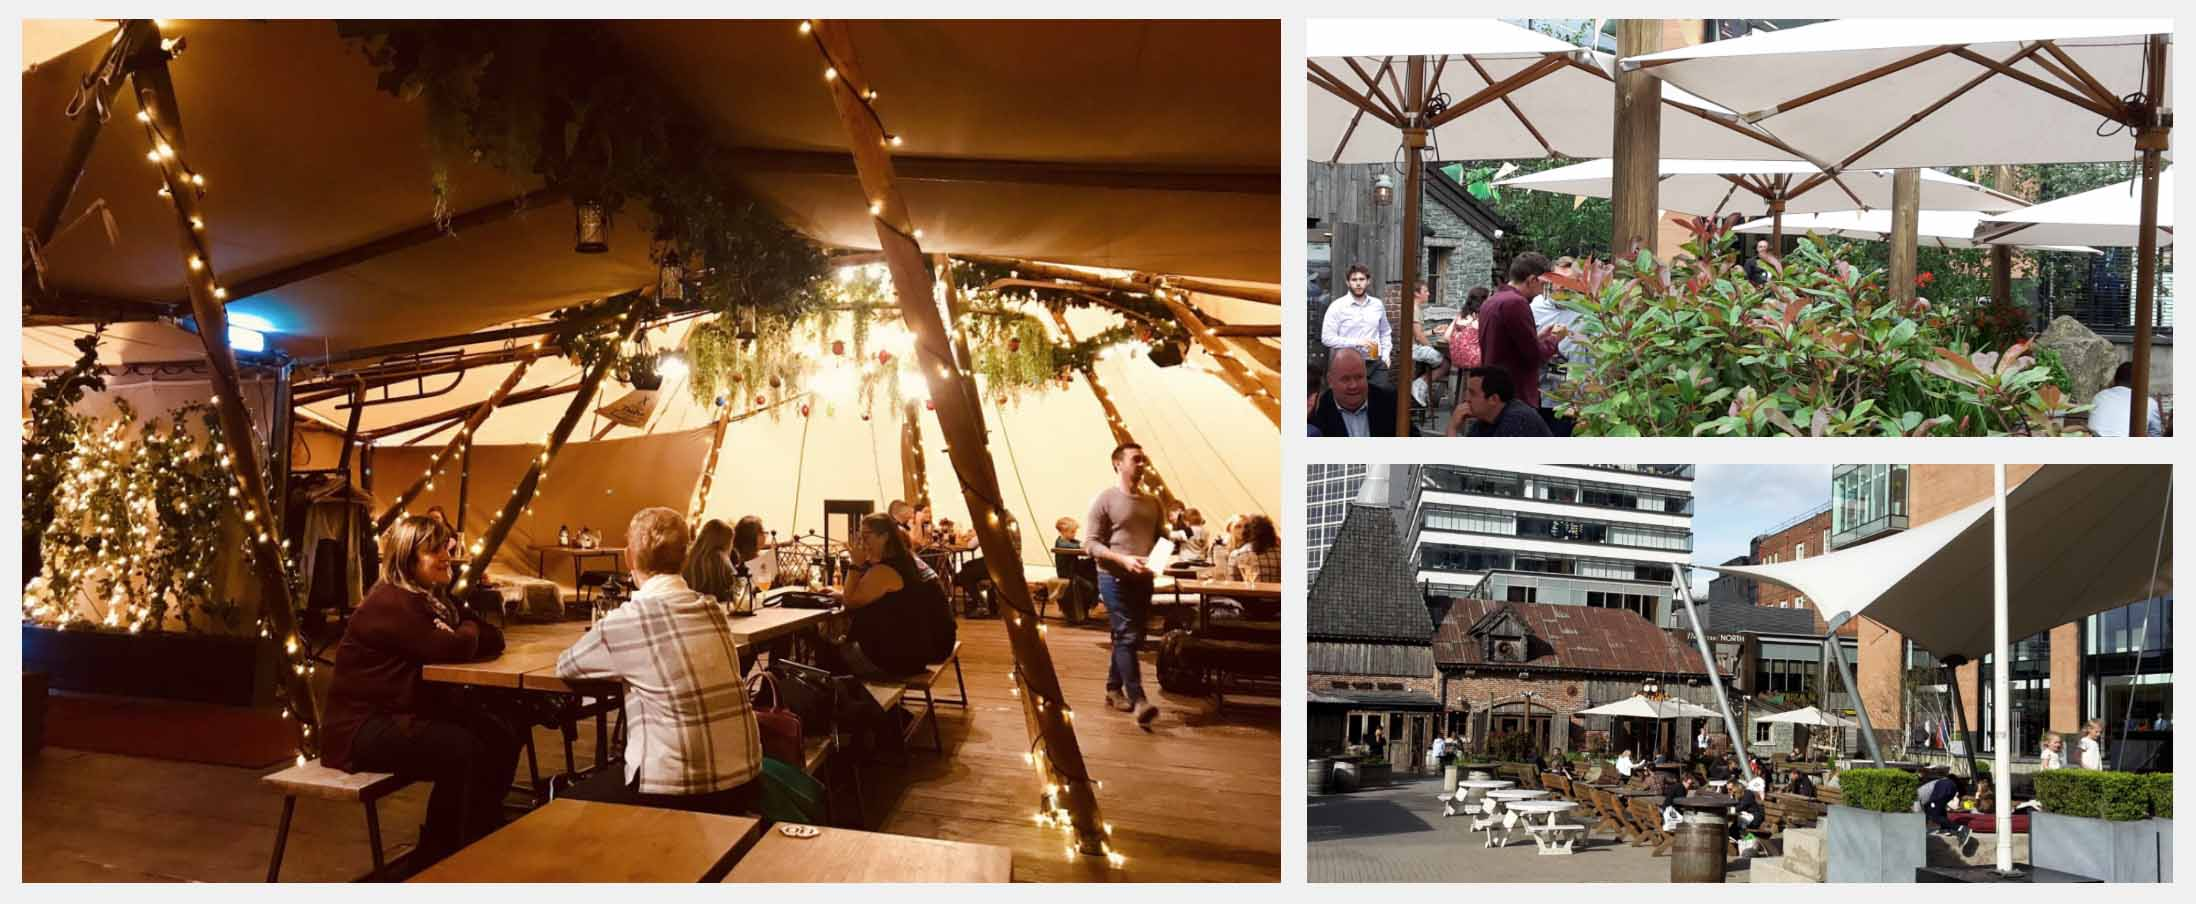 Best Beer Gardens in Manchester - The Oast House